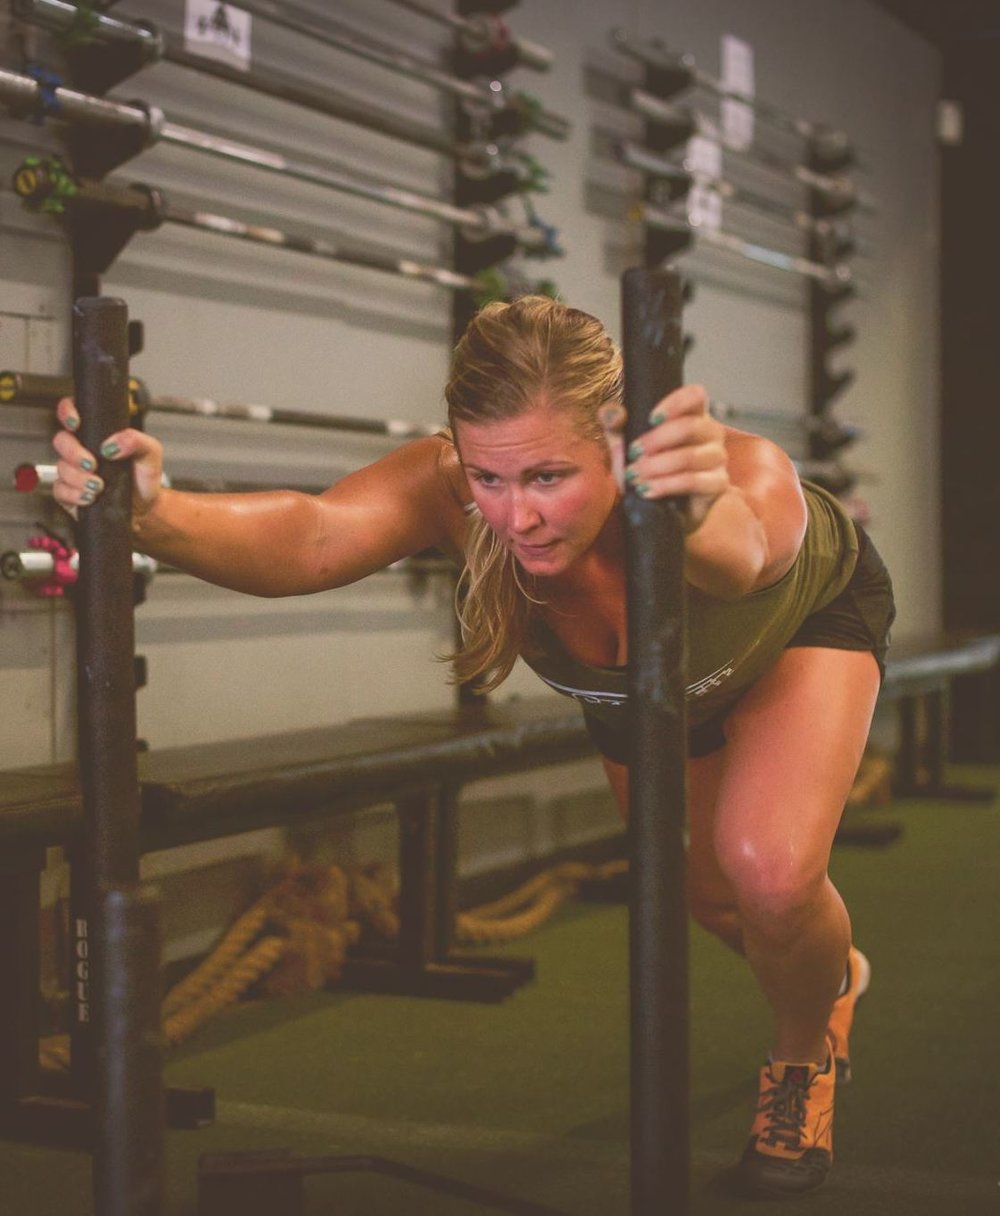 Coach Nikki   Specializations  CrossFit Level 1 Trainer  Nikki is a UNCC graduate originally from Fresno, California.  She has been CrossFitting since 2013, and fell in love with the sport after her first WOD.  You can usually find her with a smile on her face, especially when the workout involves a heavy barbell! Her favorite part about CrossFit is watching someone do something they never thought they could.